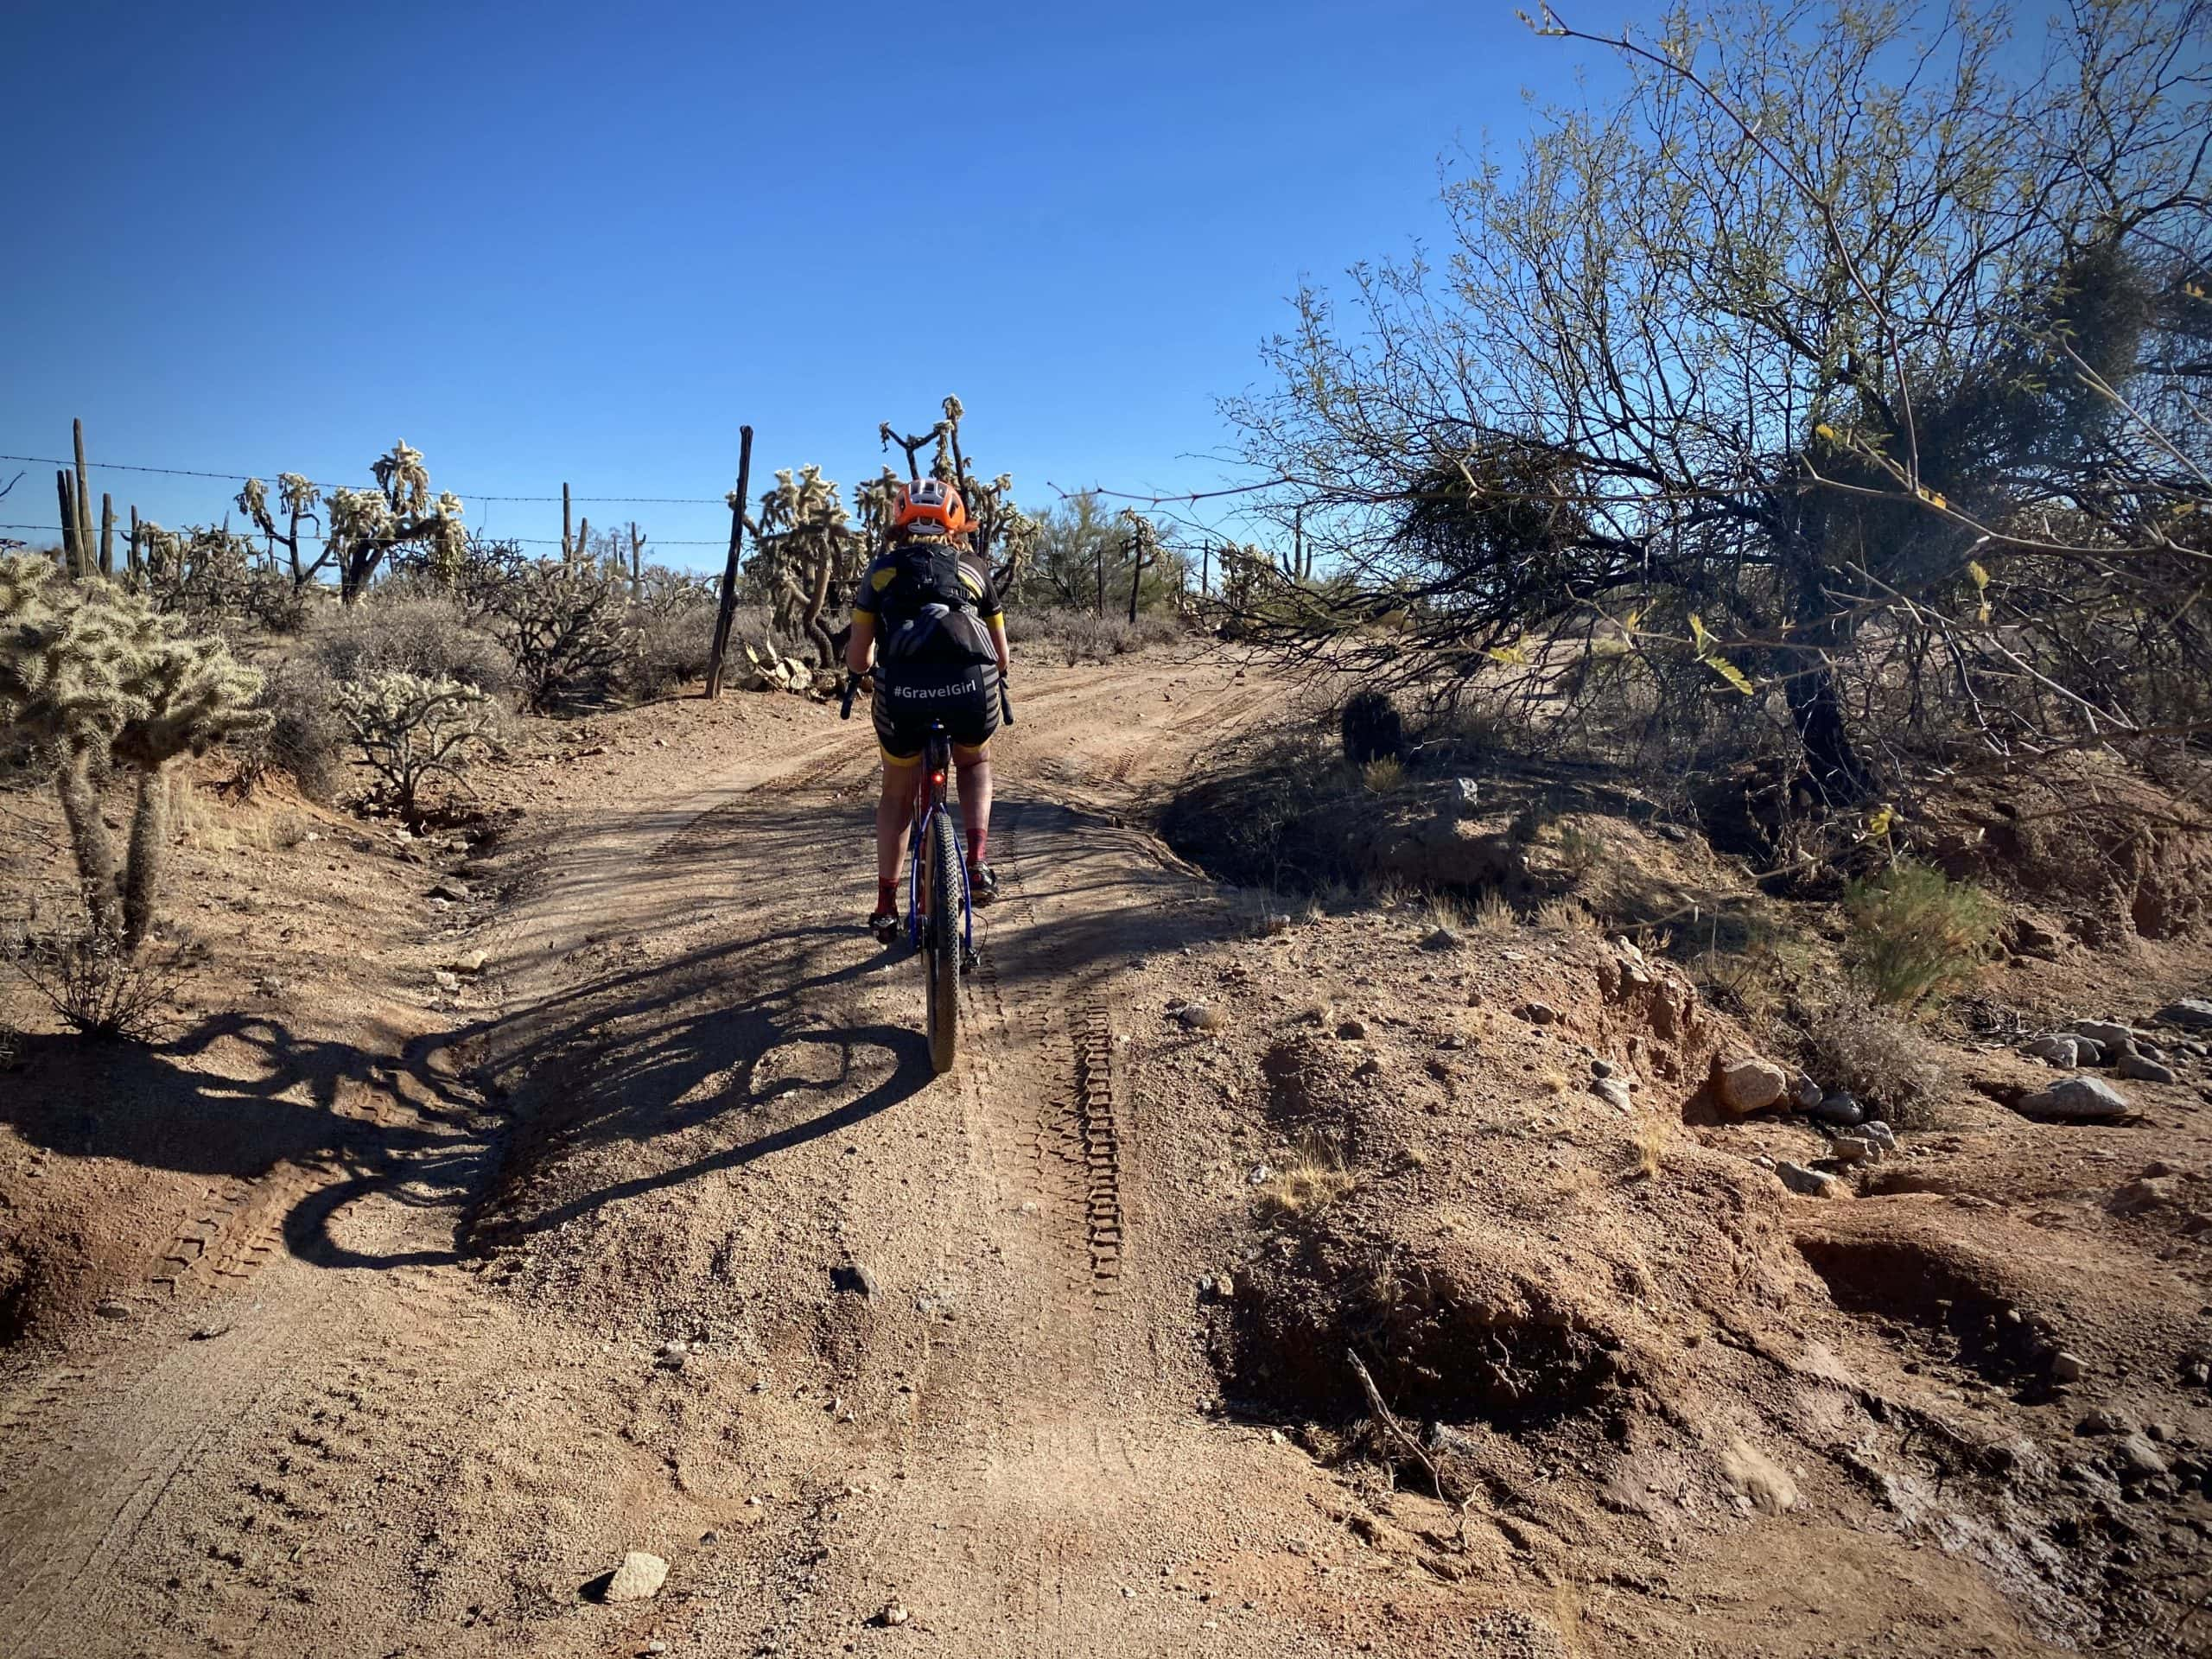 Gravel cyclist riding through a rutted section of gravel road in the Sonoran desert.